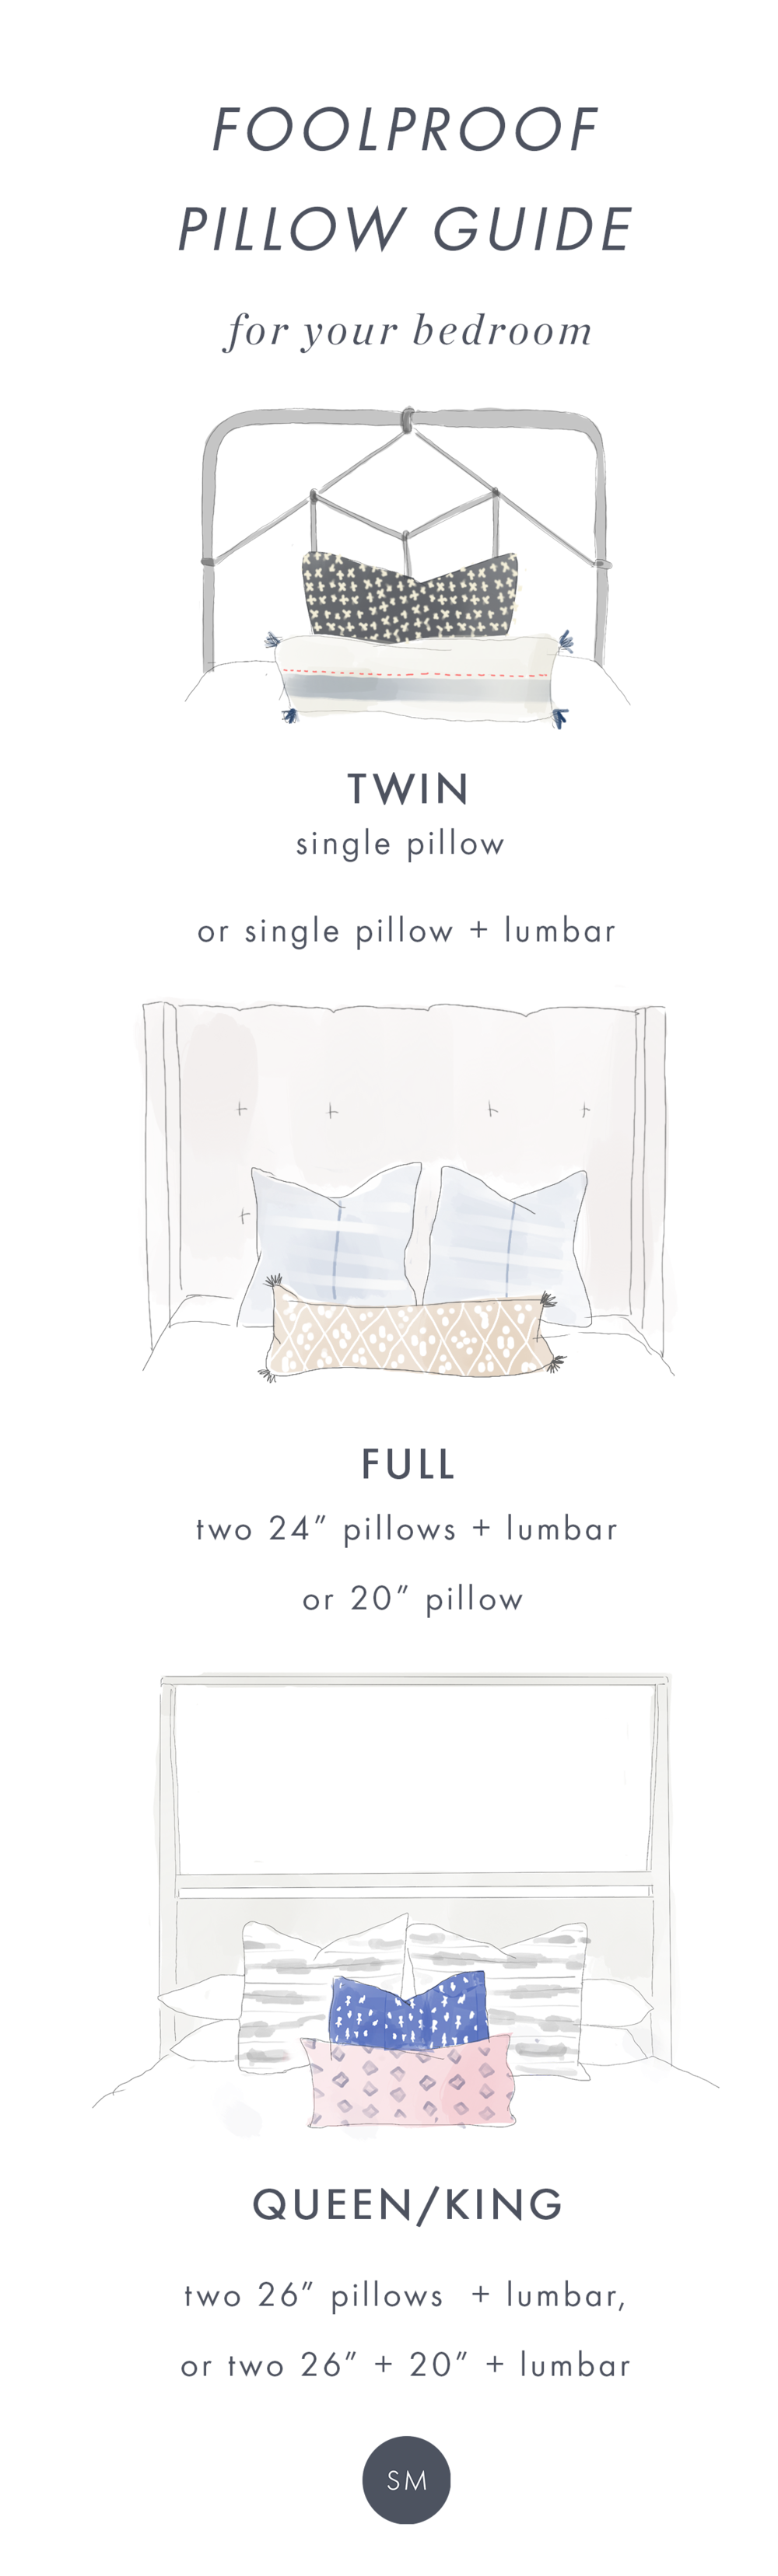 pillow guide2.png